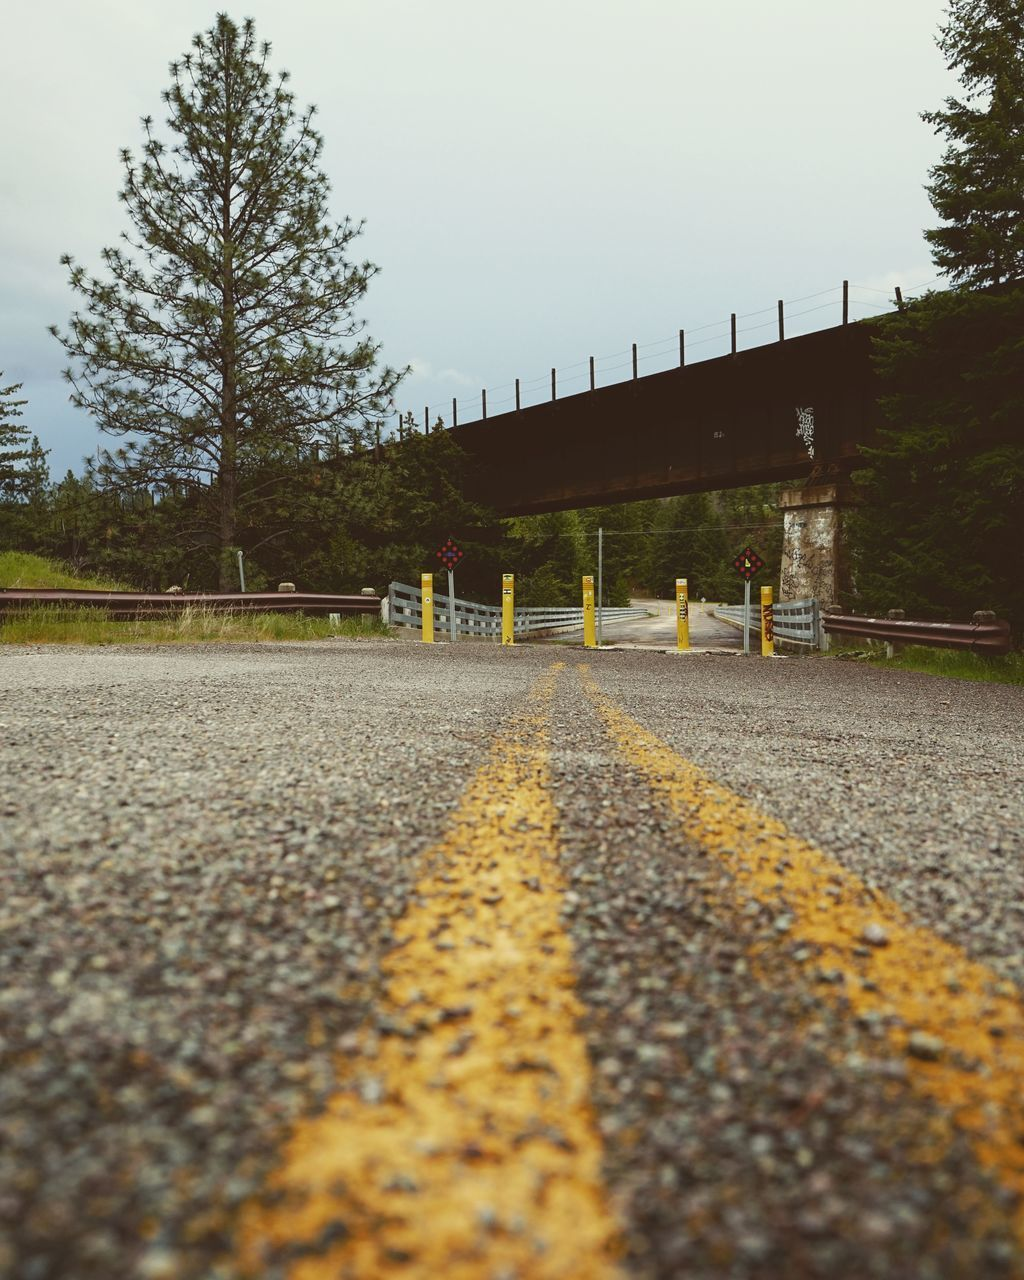 asphalt, yellow, road, no people, the way forward, tree, autumn, day, outdoors, nature